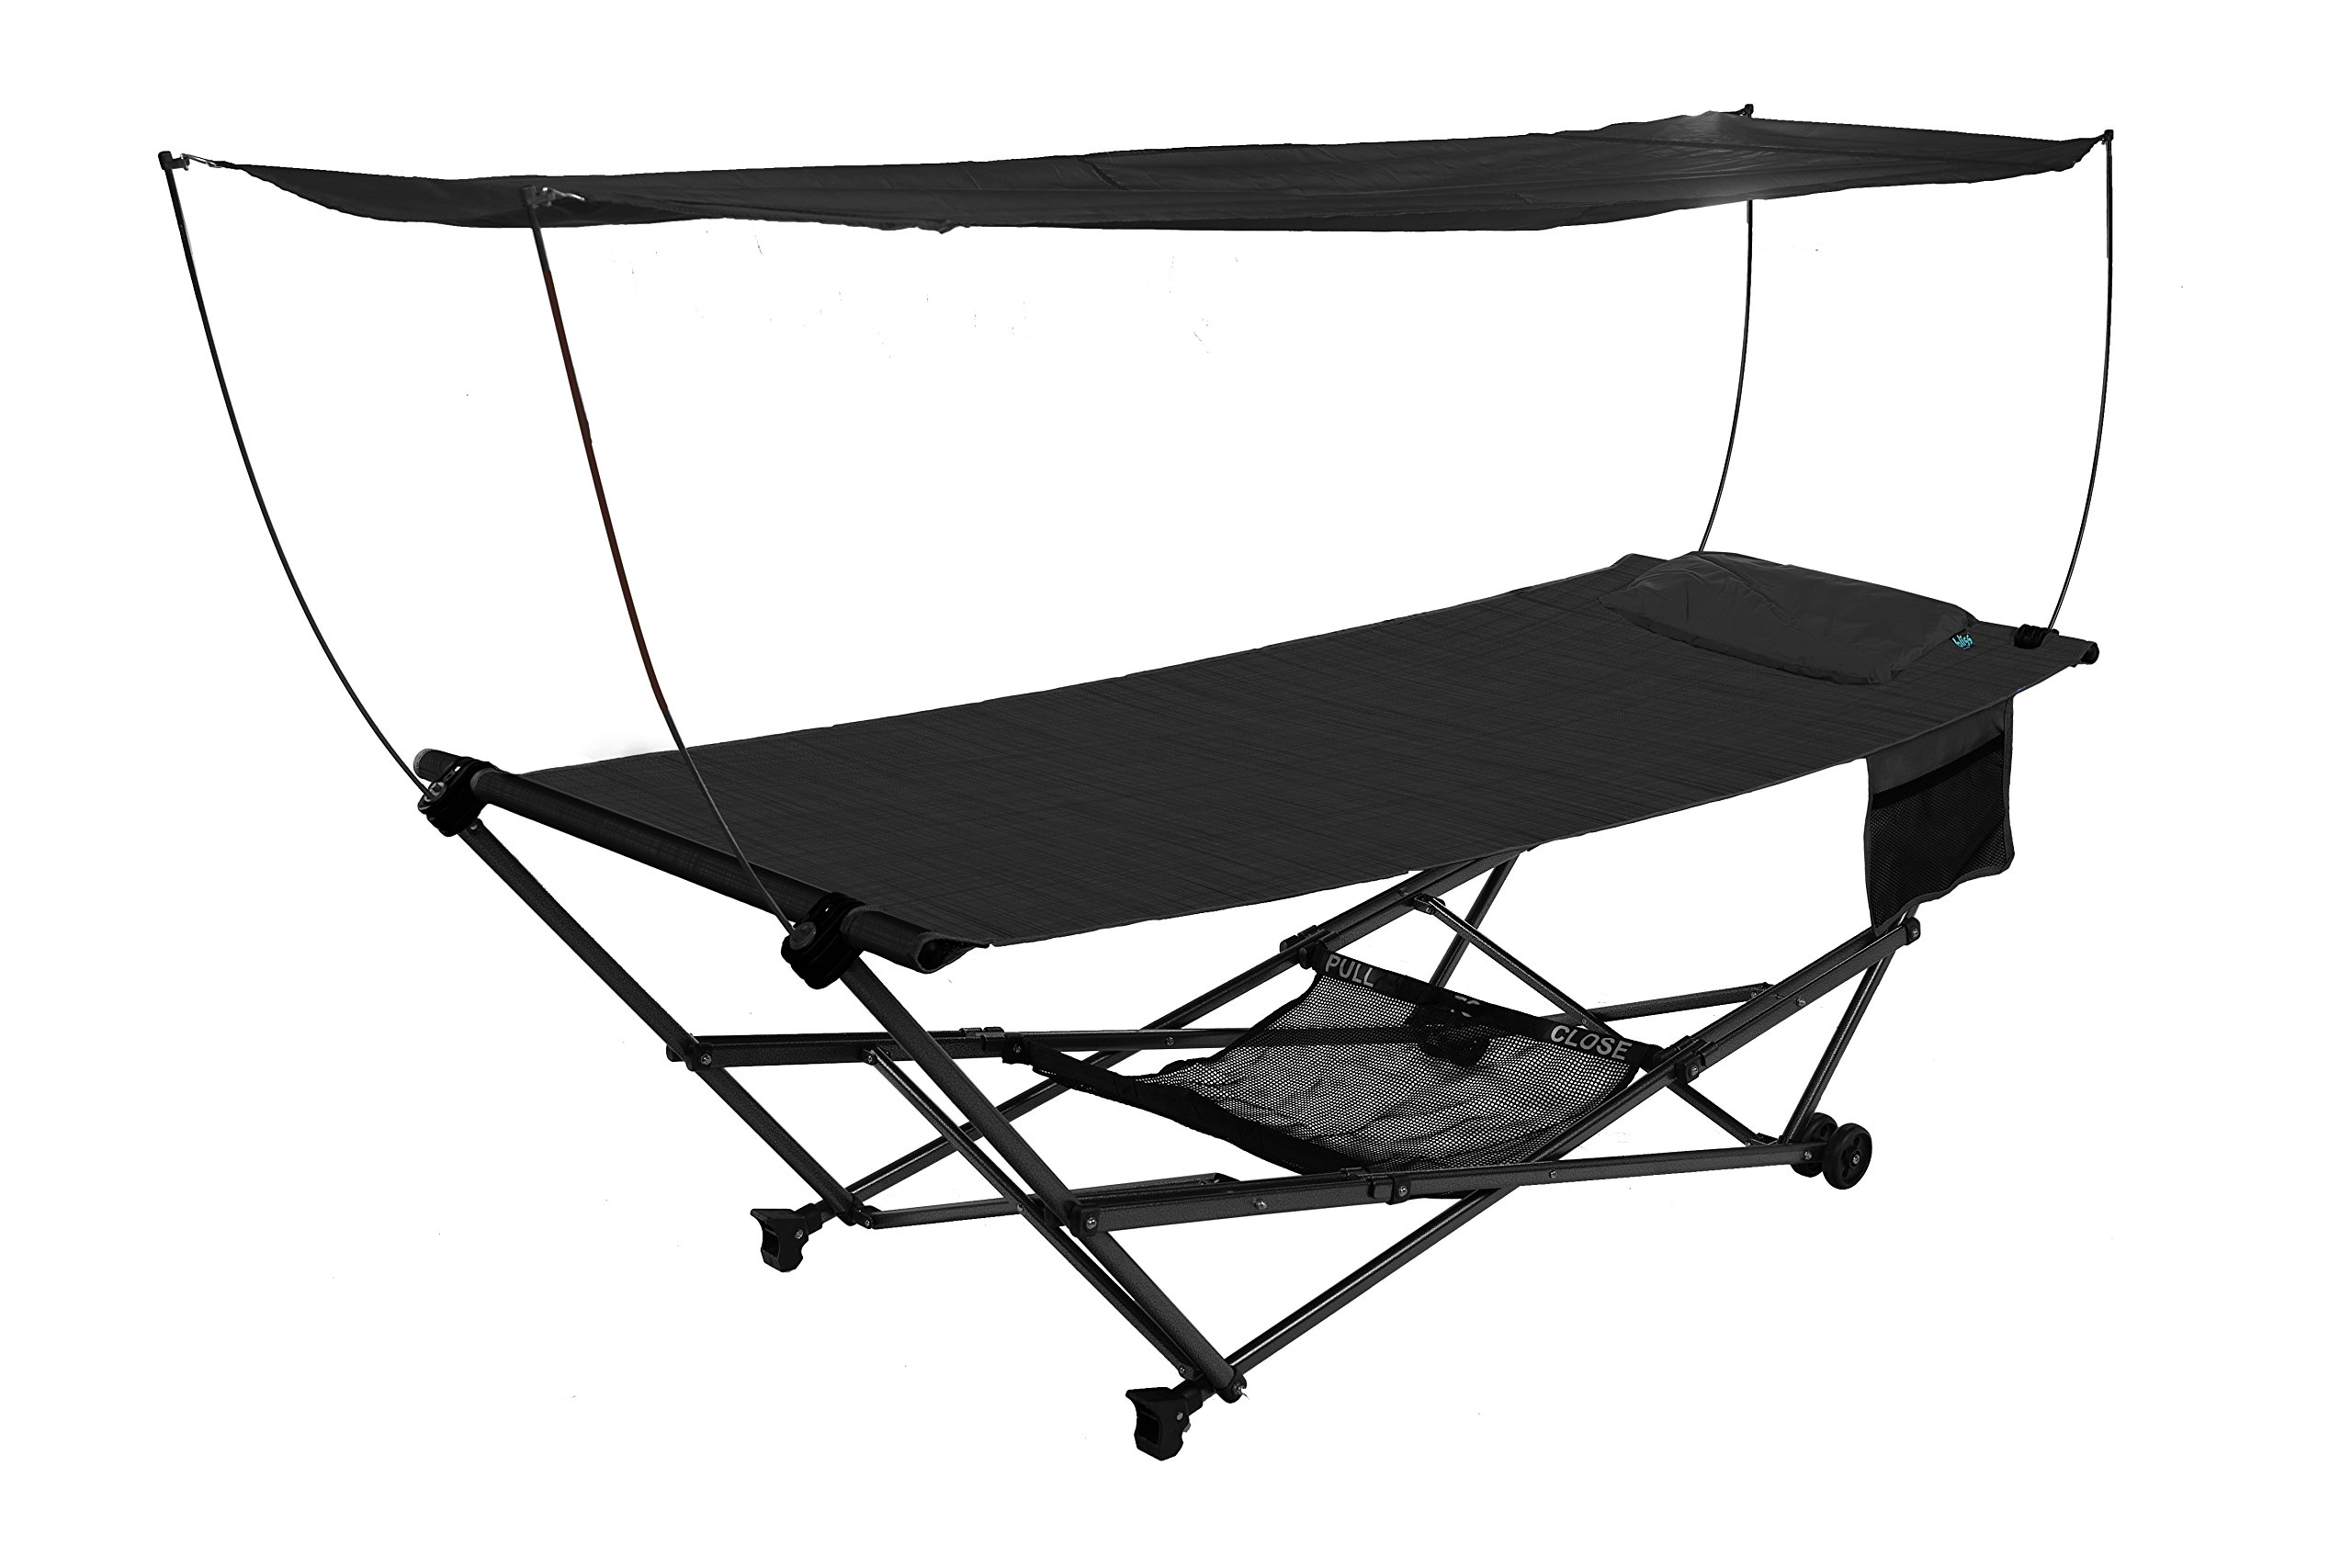 Bliss Hammocks Stow EZ Hammock & Collapsible Stand W/ Pillow & Canopy W/ Magazine & Cup Holder, Black